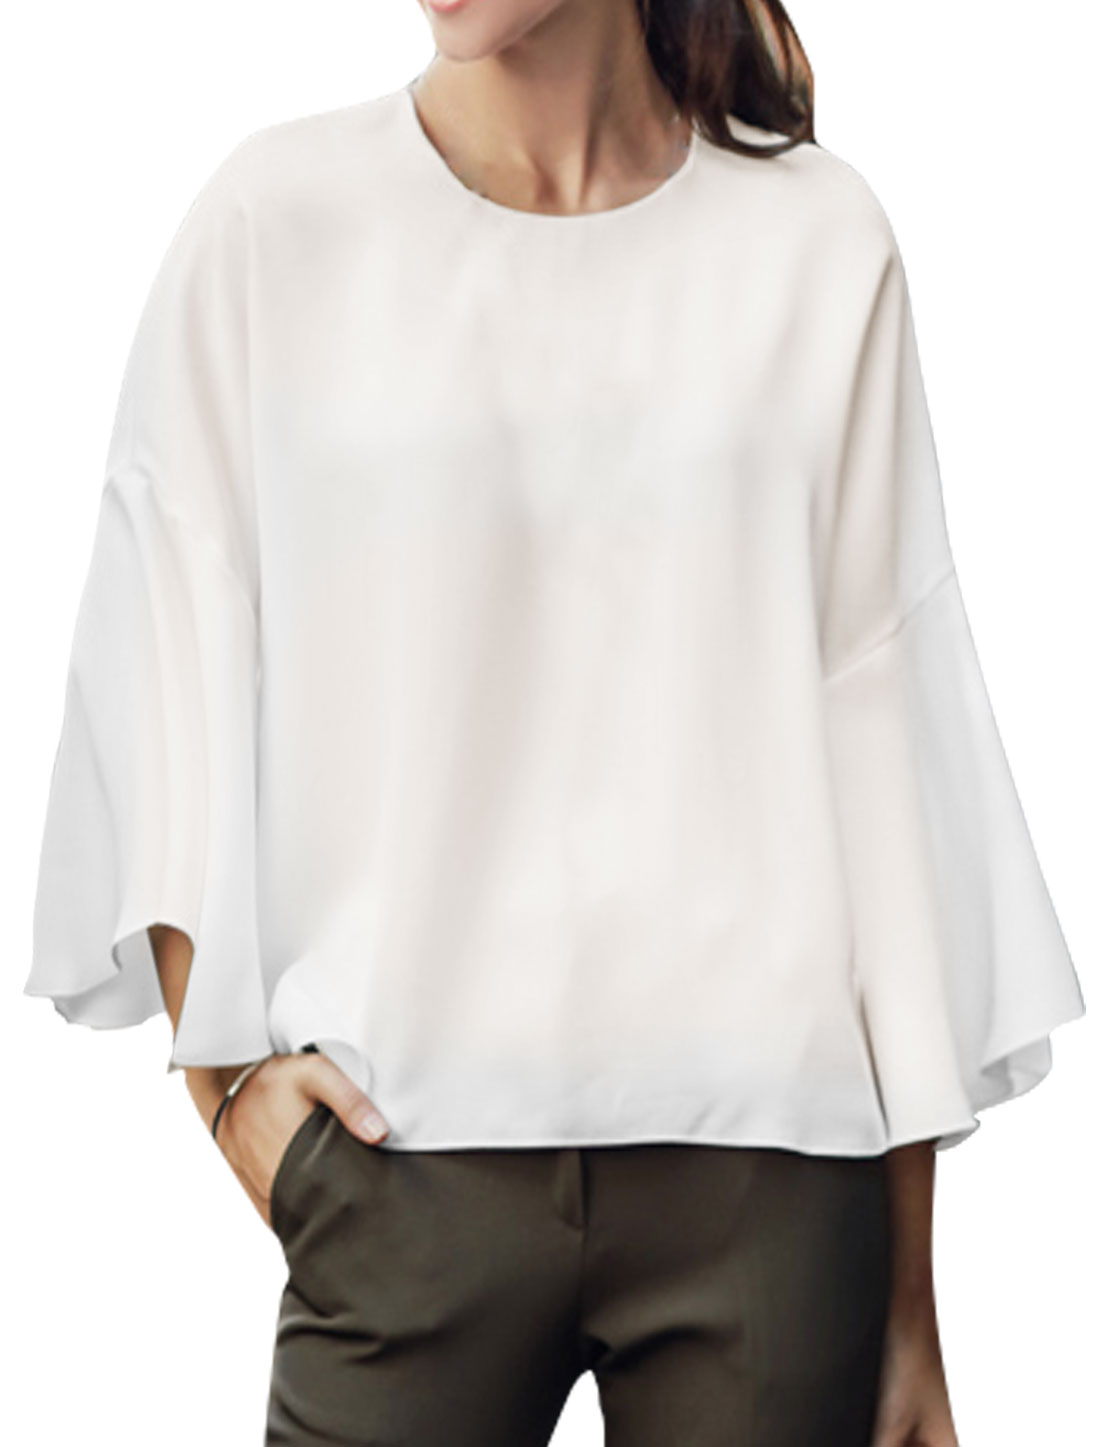 Women Round Neck 3/4 Bell Sleeves Semi Sheer Loose Blouse White XS